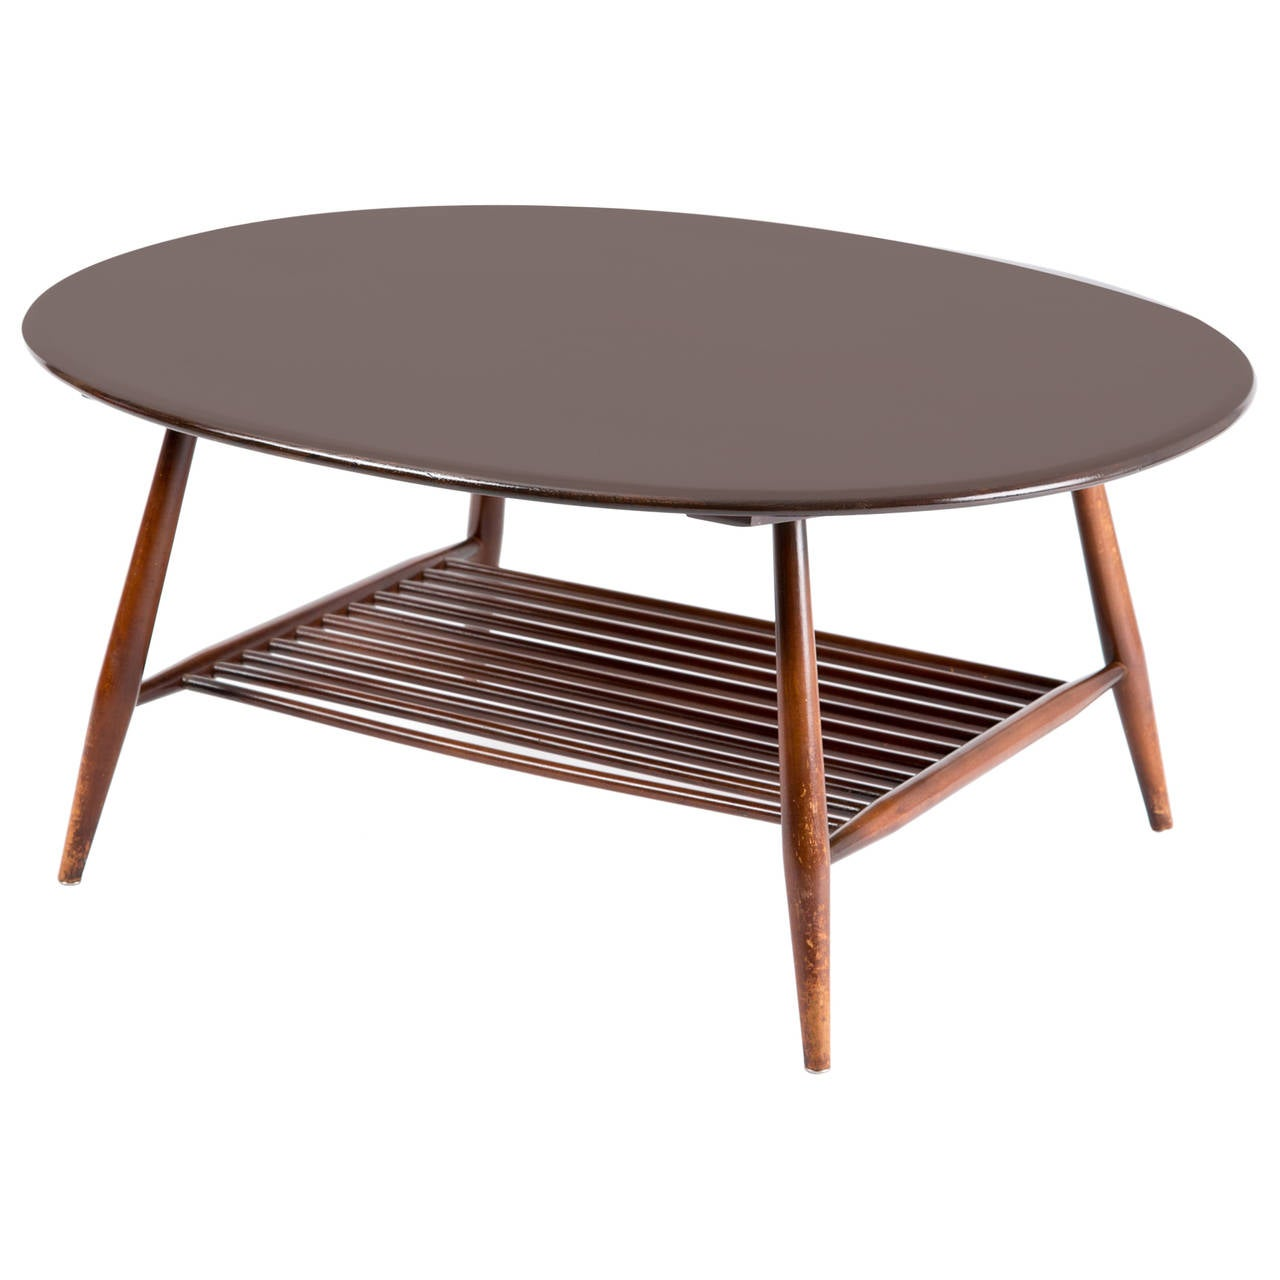 Ercol Oval Coffee Table: Ercol England Oval Table With Magazin Layer At 1stdibs